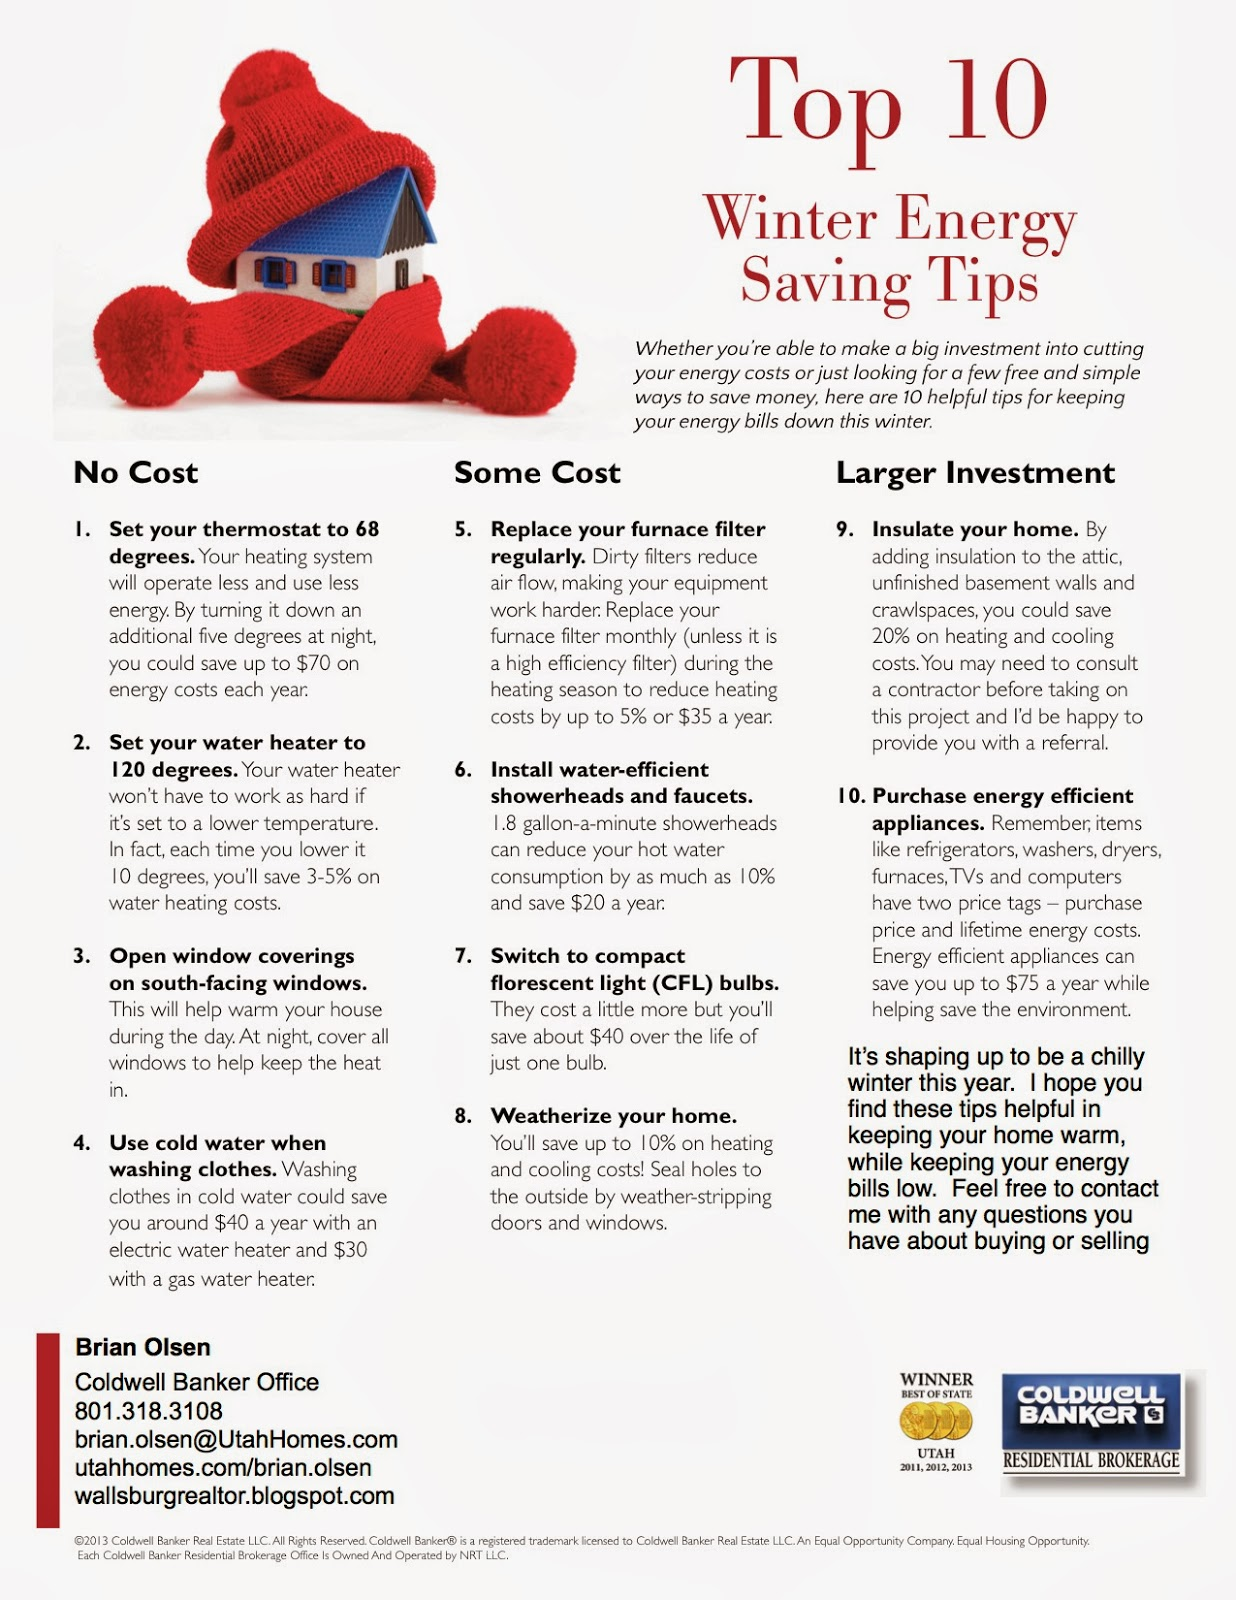 Winter Energy Saving Tips for your home